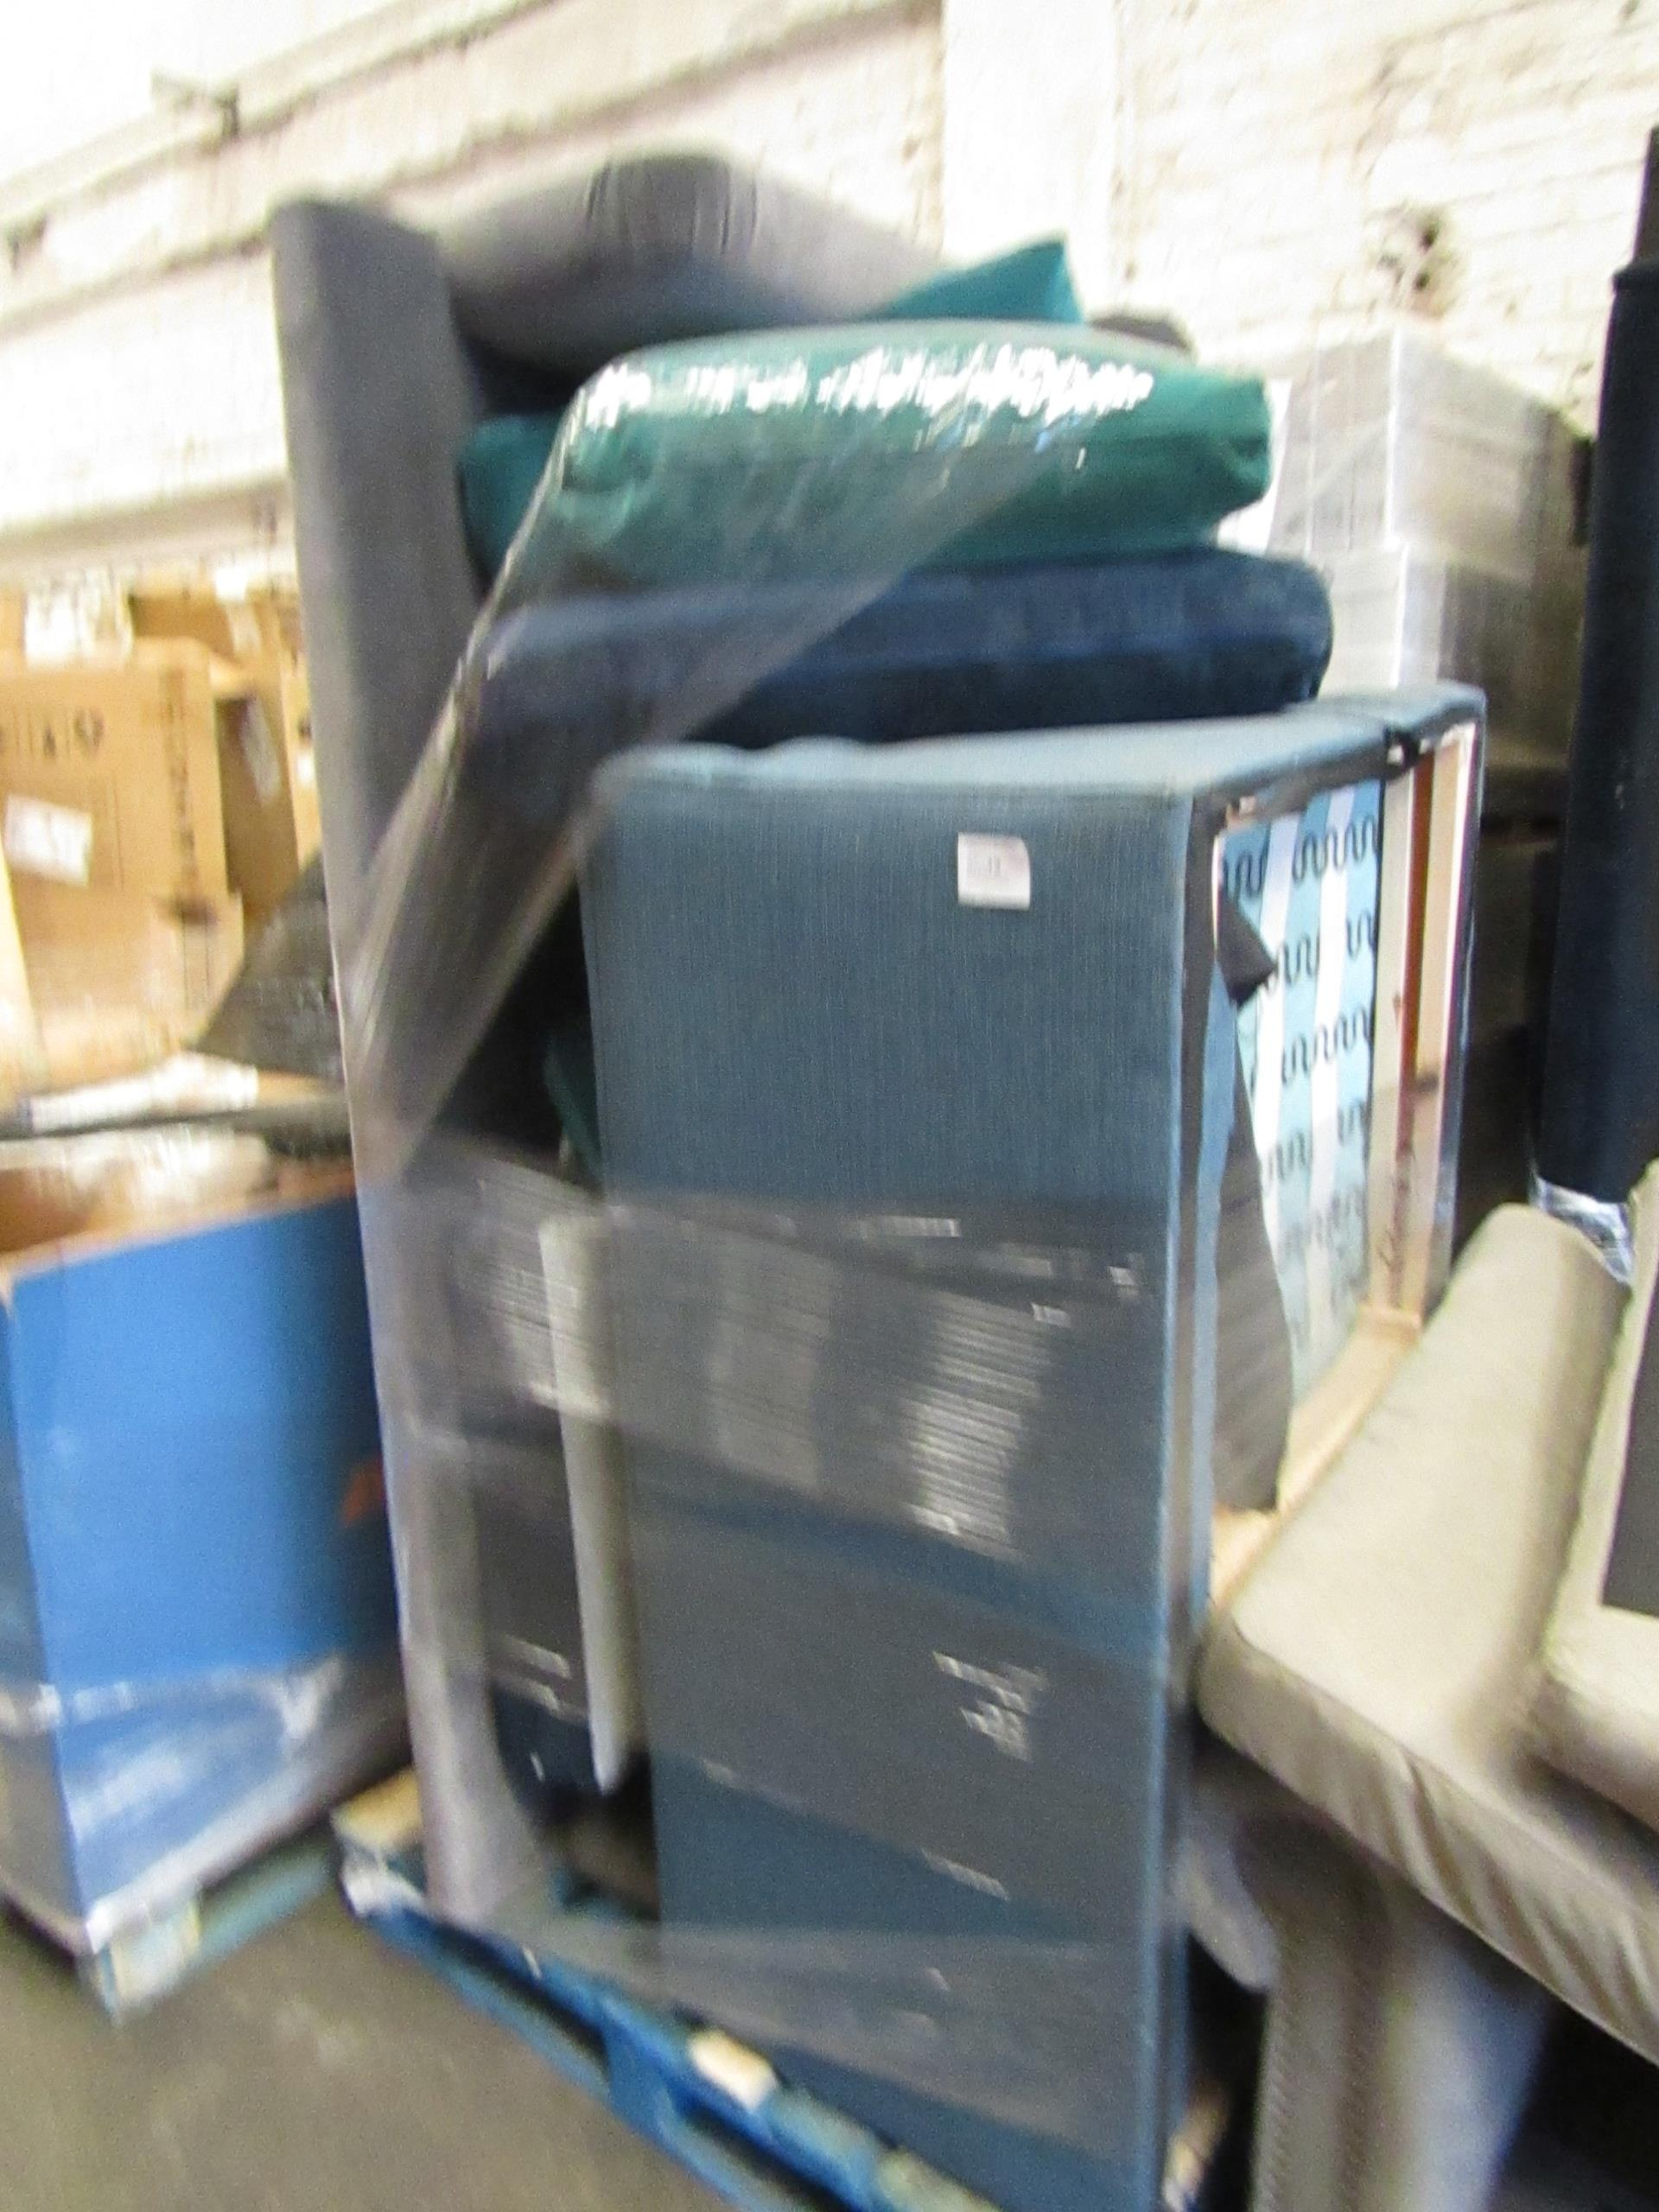 | 13X | PALLETS OF SWOON BER SOFAS, THESE ARE CUSTOMER RETURNS SO COULD HAVE MINOR DAMAGE, MAJOR - Image 8 of 11